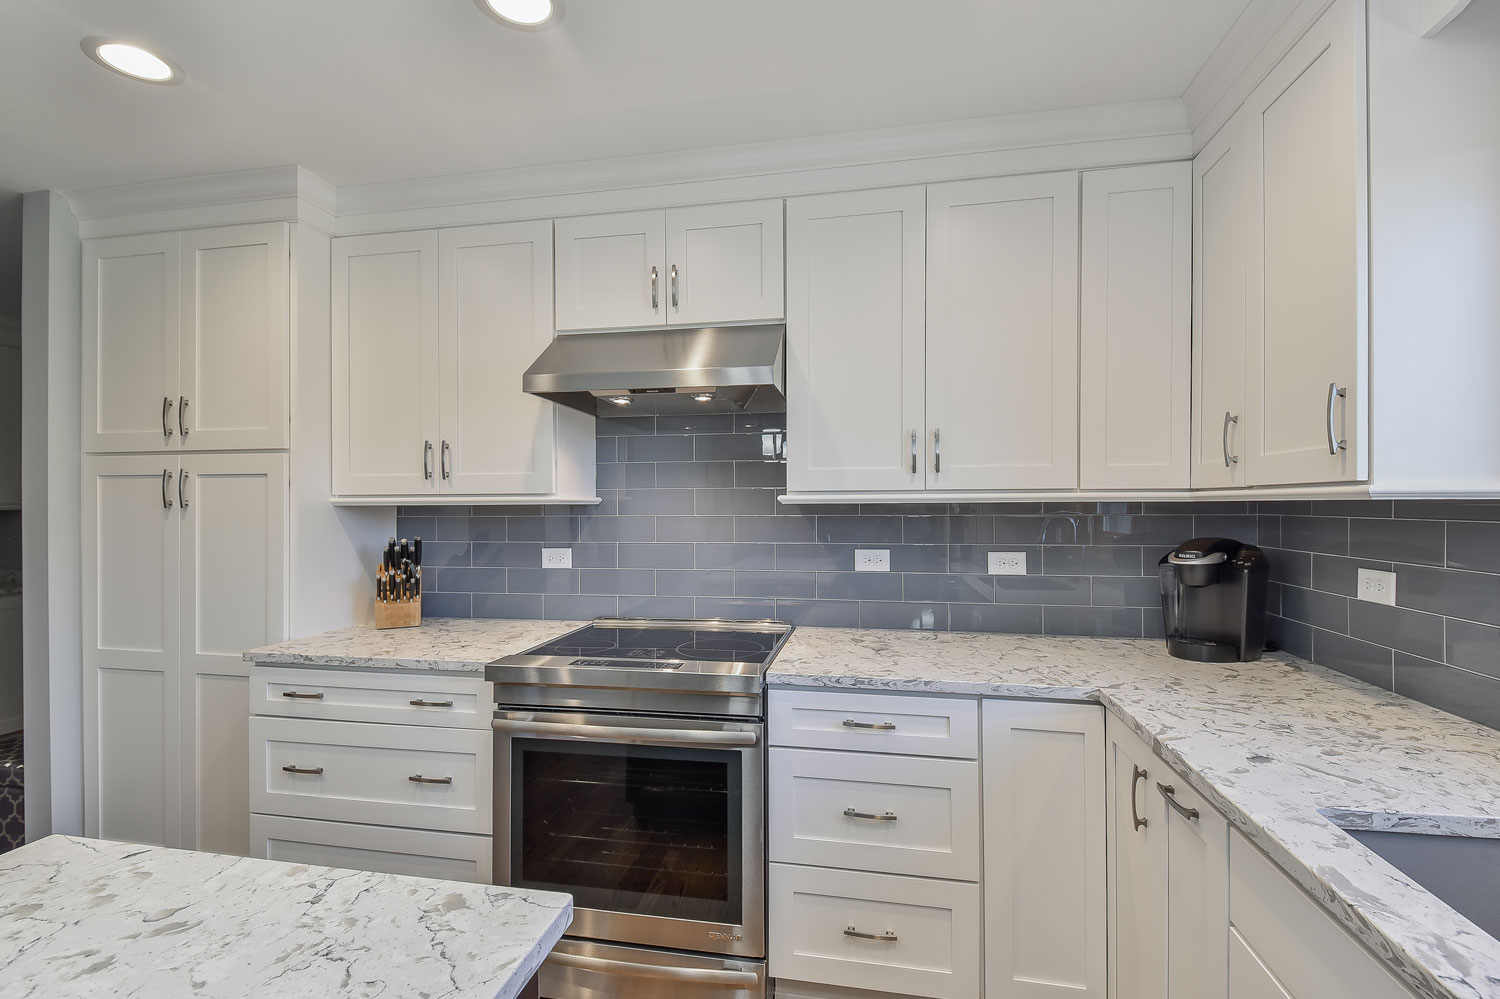 Homer Glen Kitchen Remodeling Project With White Shaker Cabinetry, Quartz  Countertops, Blue Subway Tile